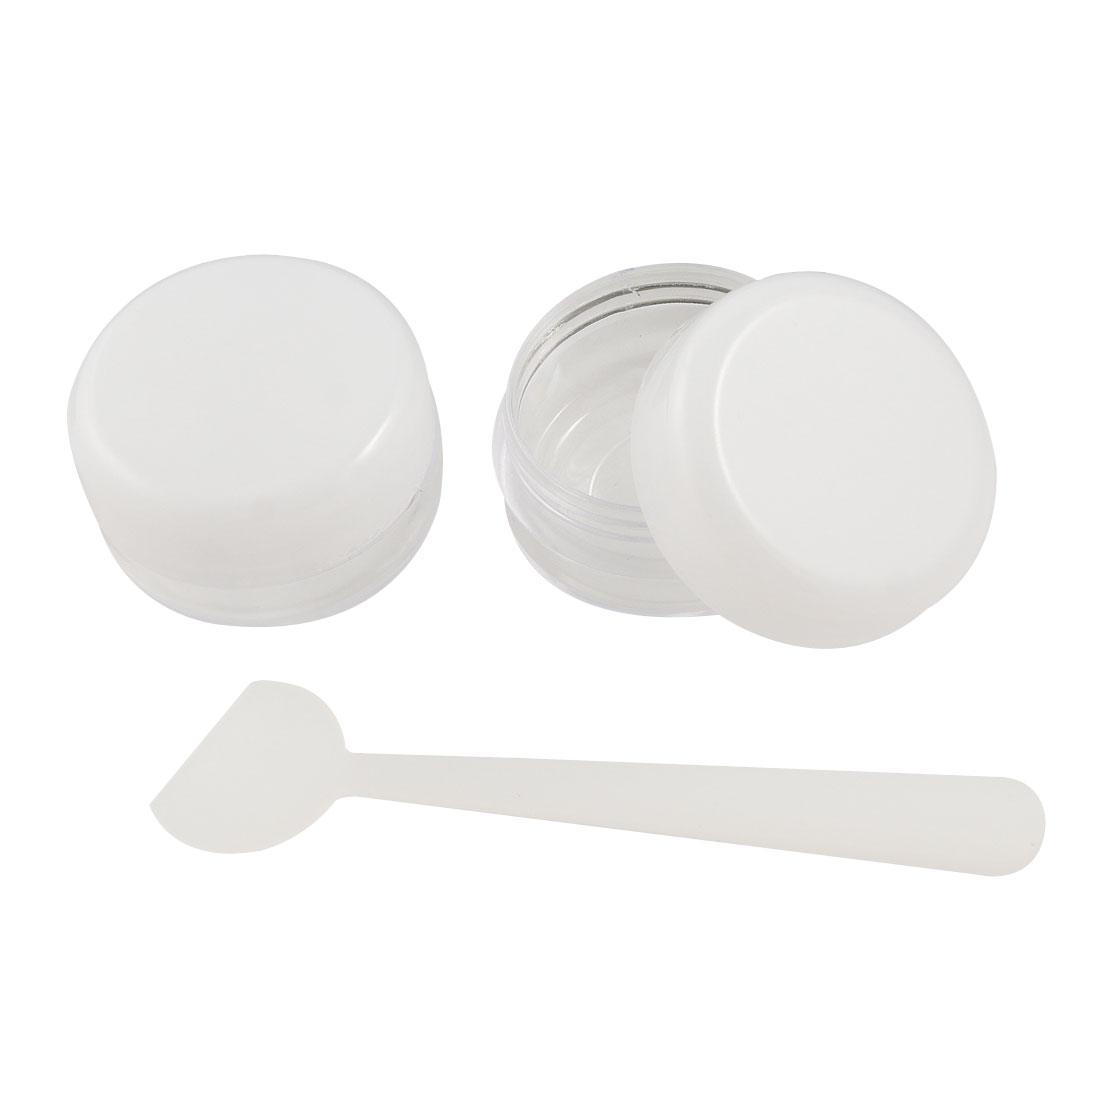 2 Pcs White Clear Cosmetic Round Plastic Case Container w Mixing Spoon